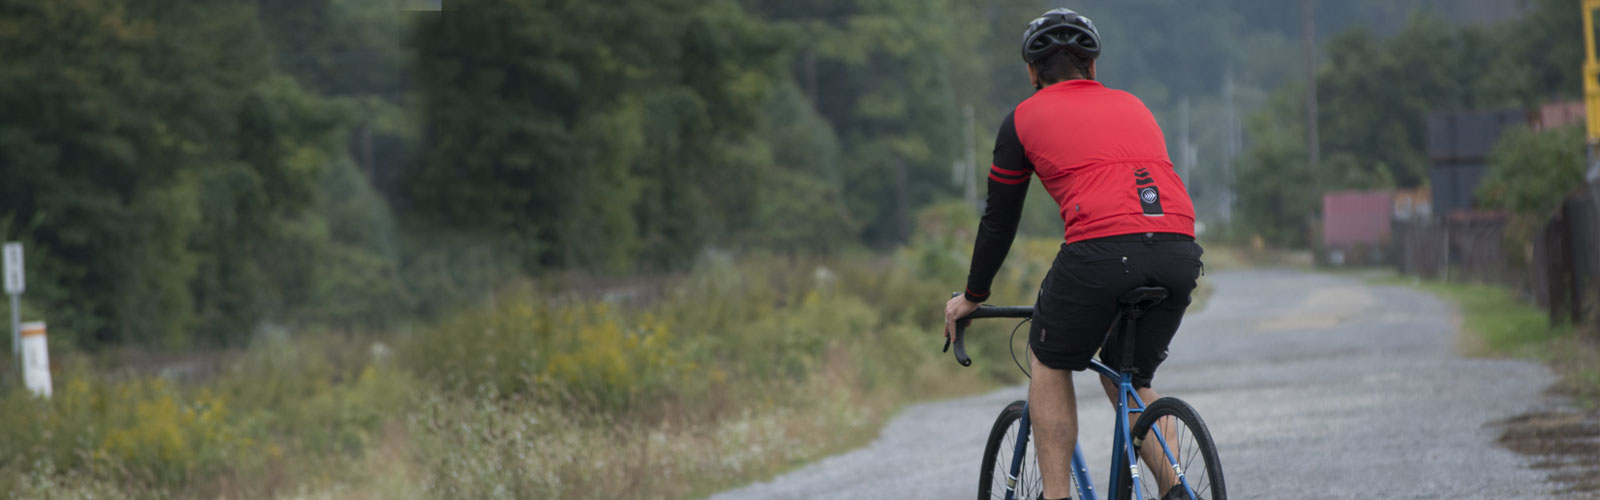 Big Man's Cycling Apparel and Gear